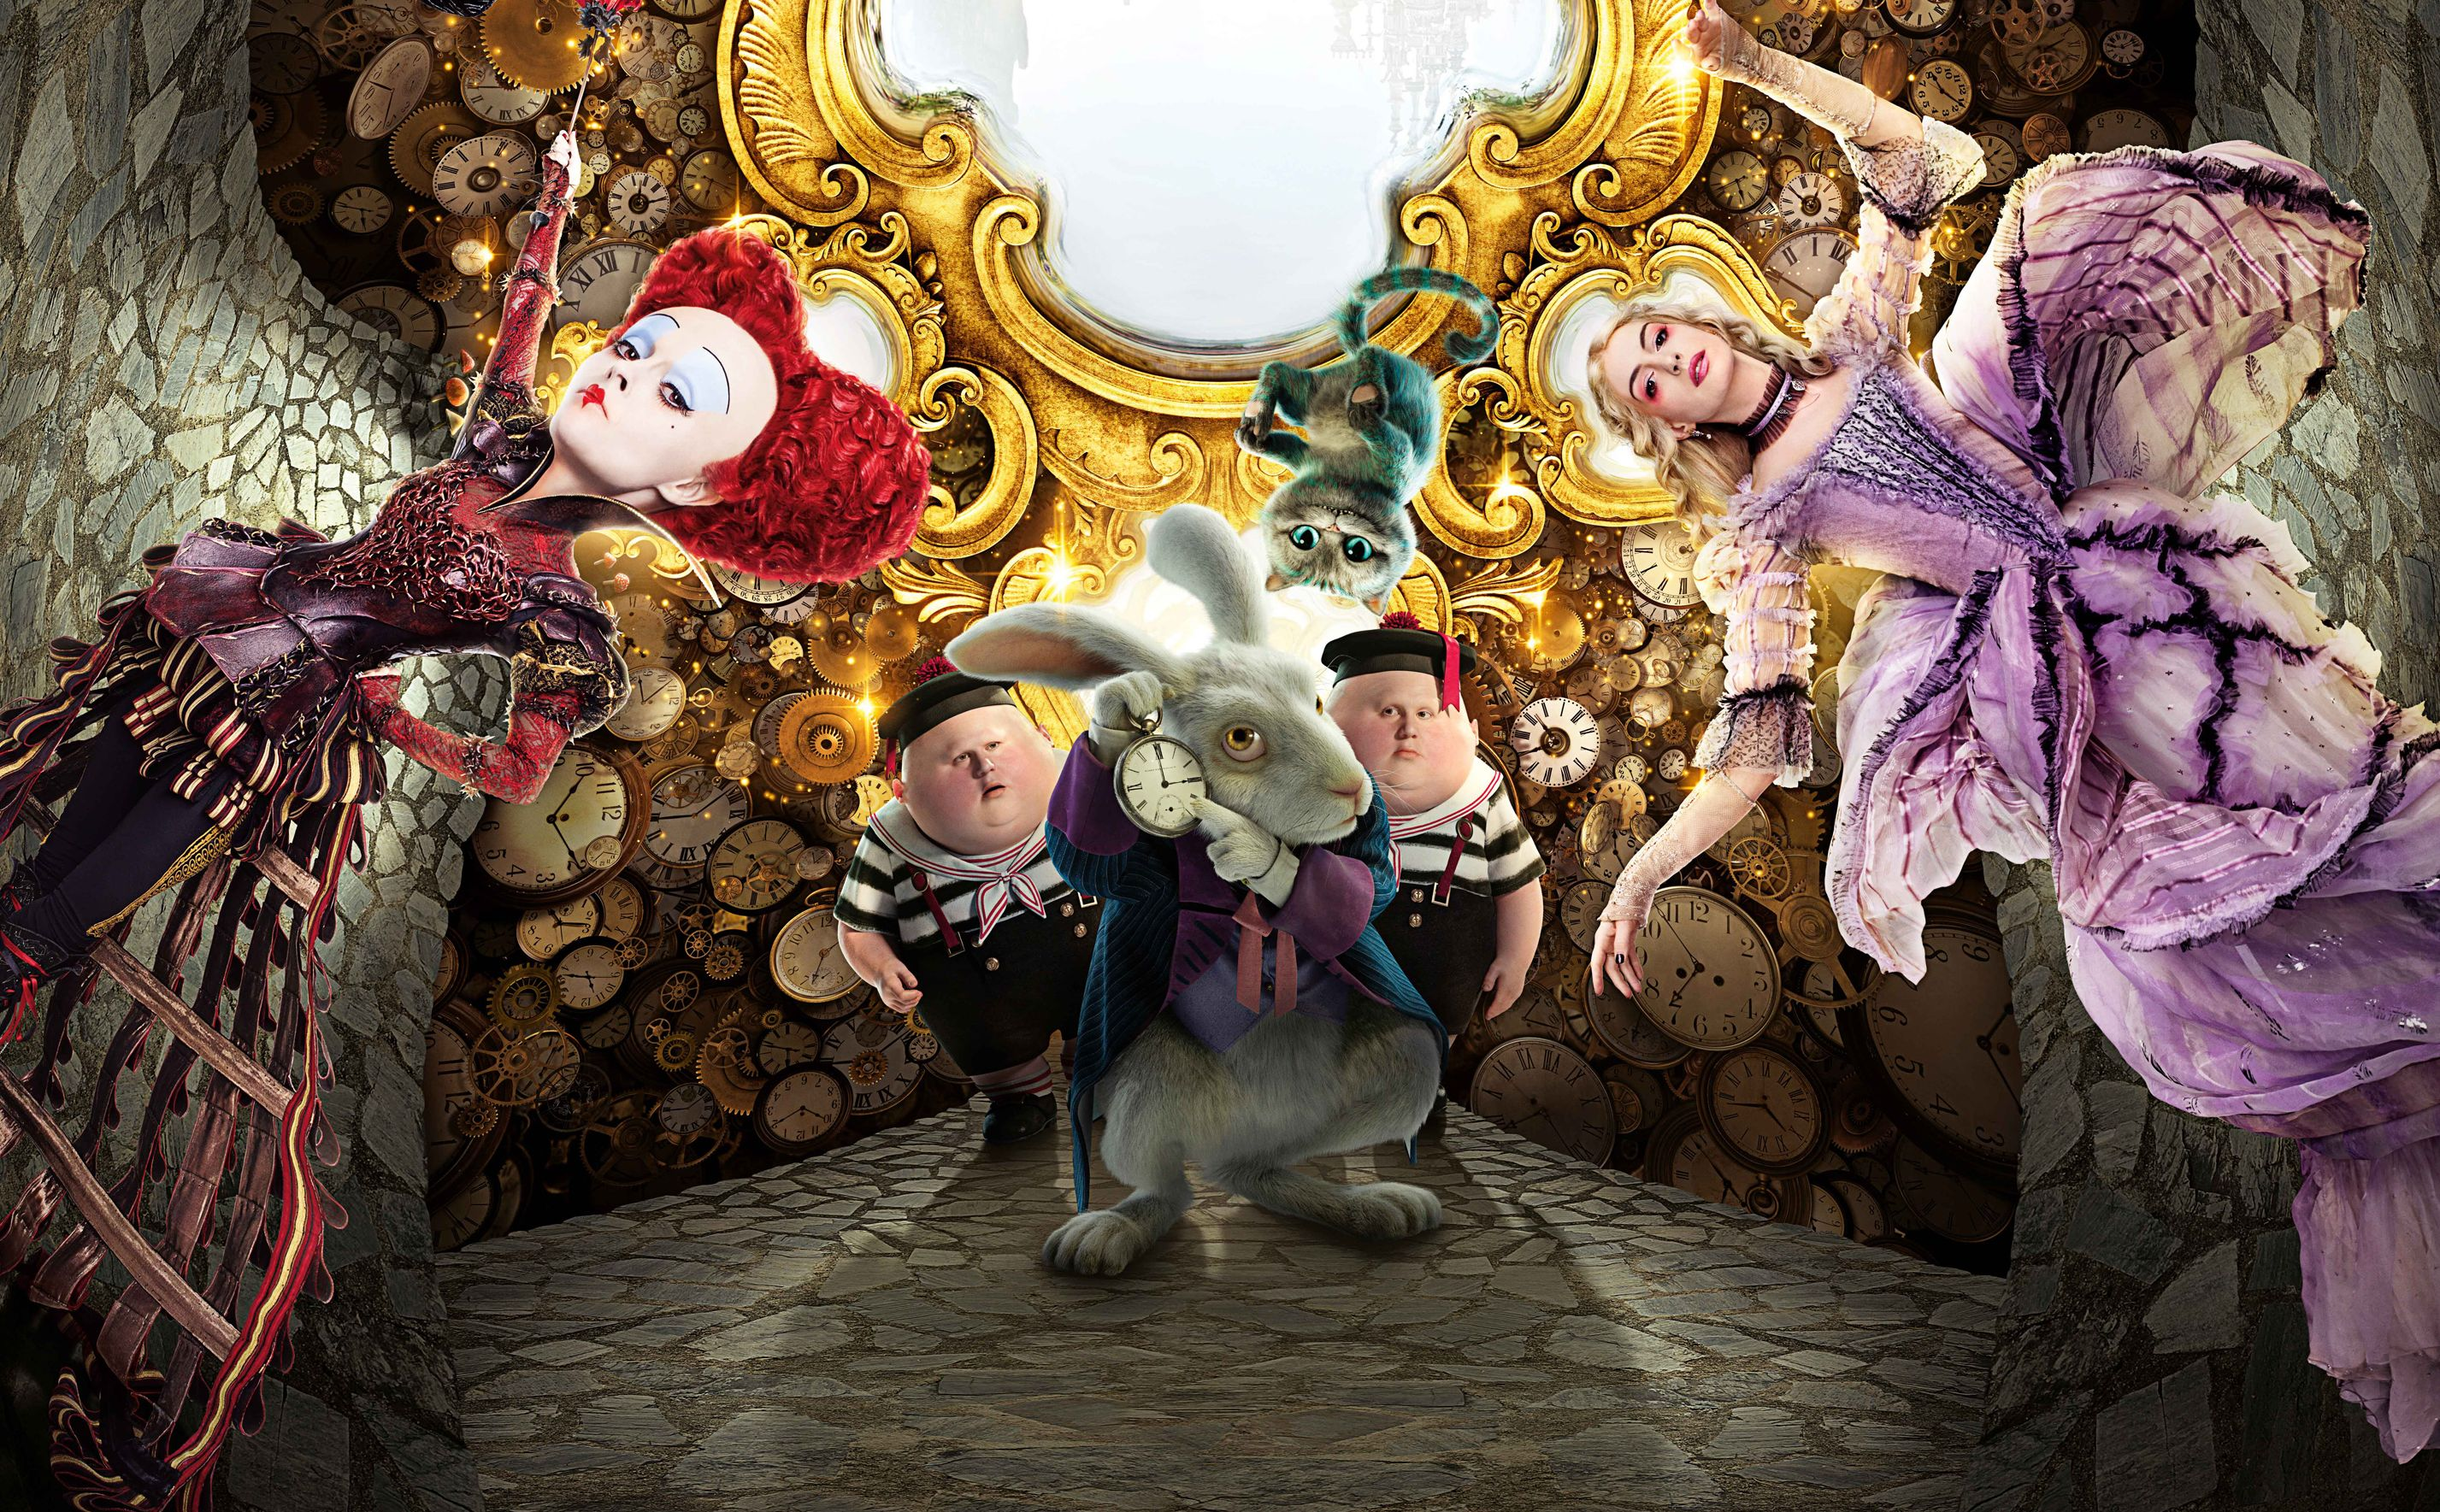 Alice Through the Looking Glass cast of characters